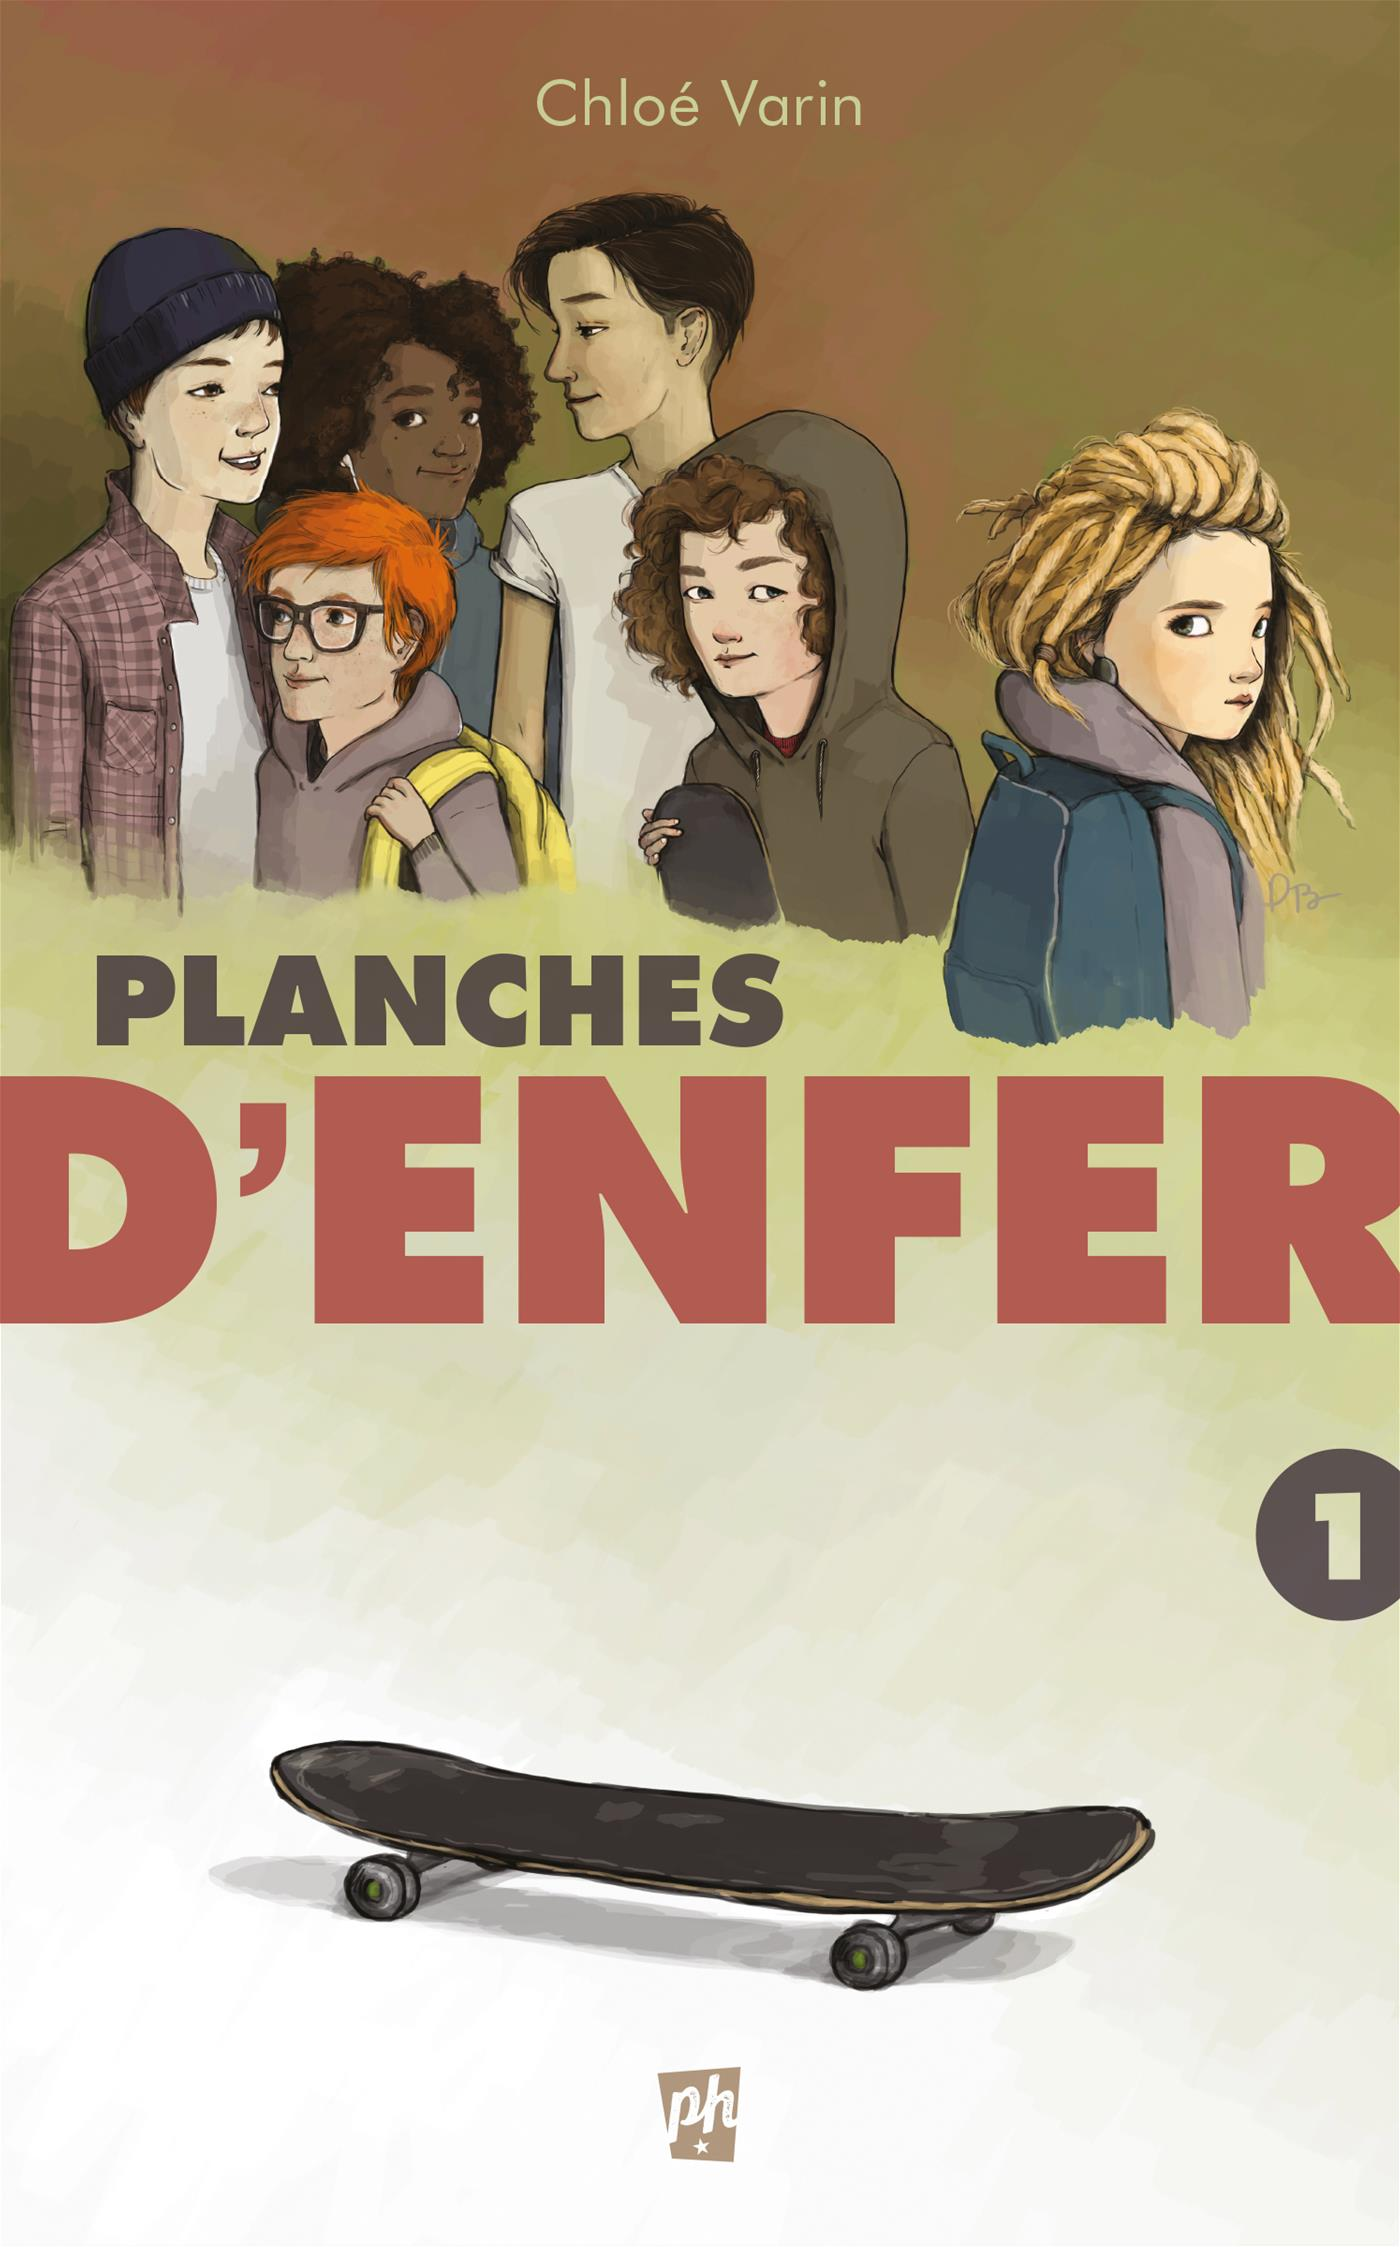 Planches d'enfer. Tome 1 : Annabelle 180